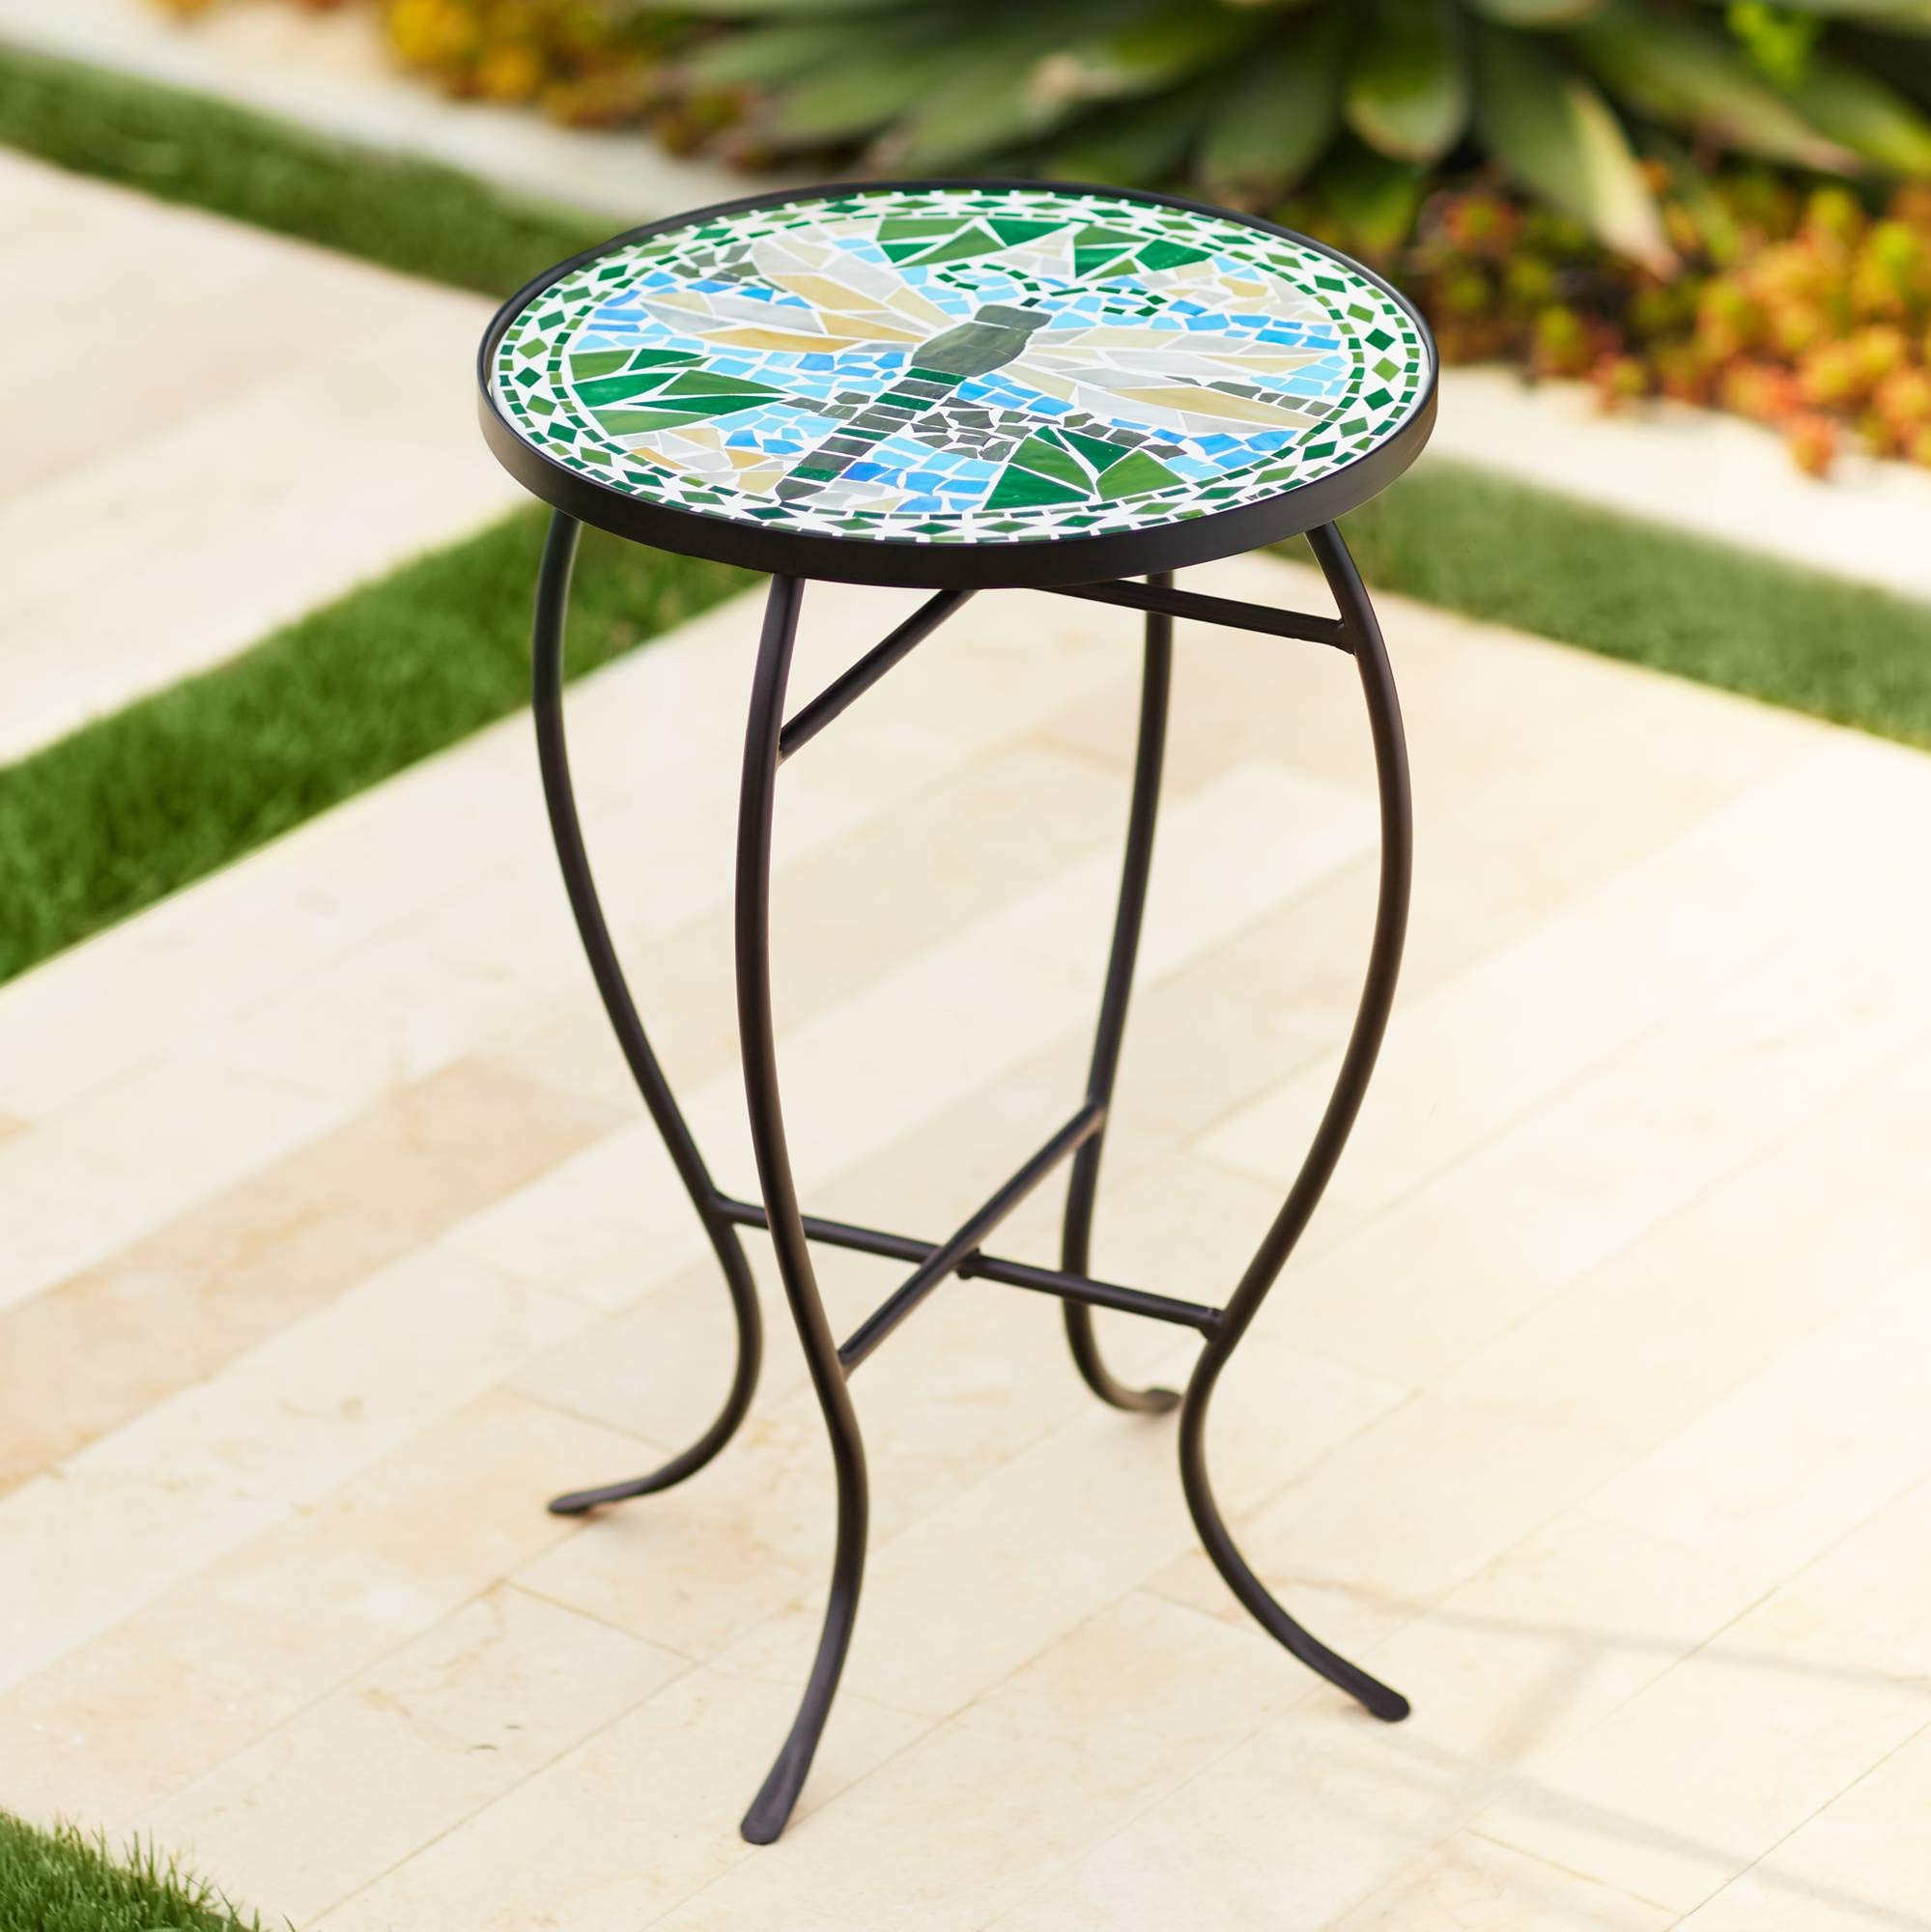 Teal Island Designs Dragonfly Mosaic Black Iron Outdoor Accent Table by Teal Island Designs